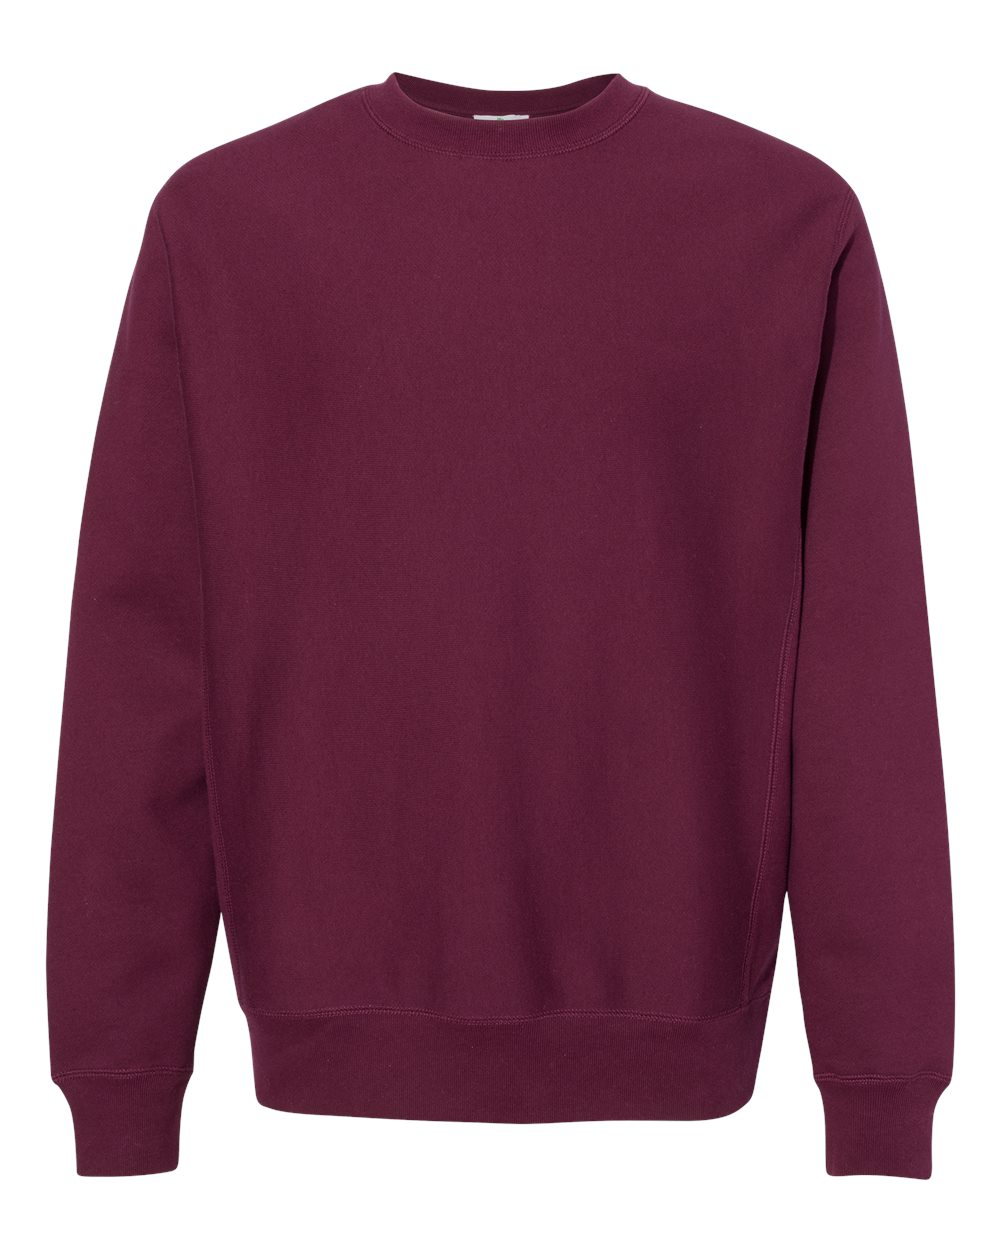 Independent-Trading-Co-Mens-Premium-Heavyweight-Cross-Grain-Sweatshirt-IND5000C thumbnail 24